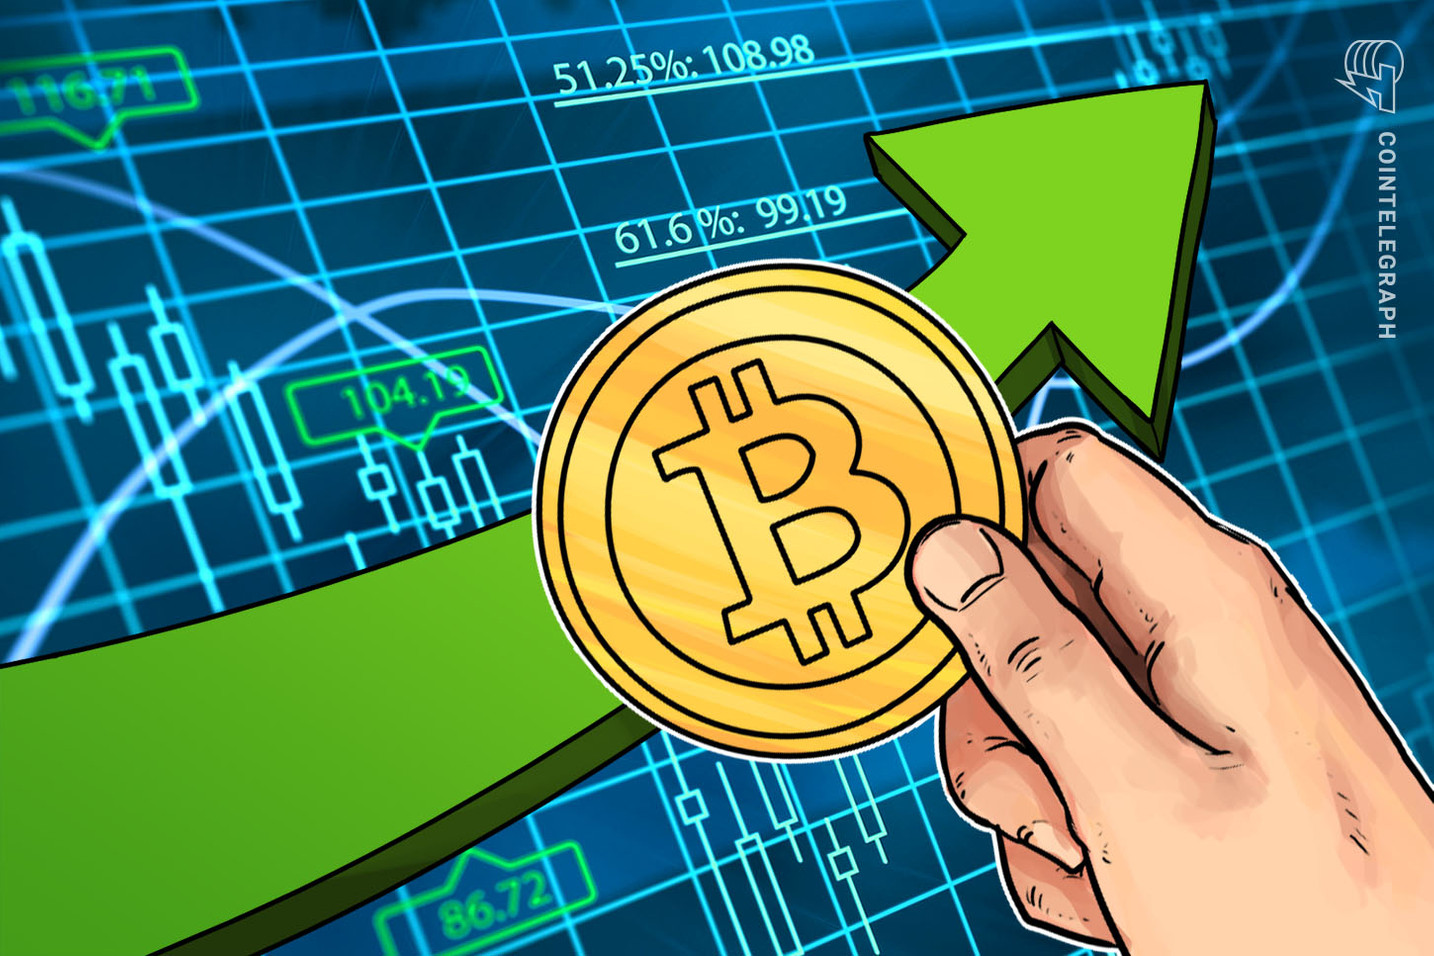 3 Key Indicators Suggest Bitcoin Price Is Ready for a Massive Move